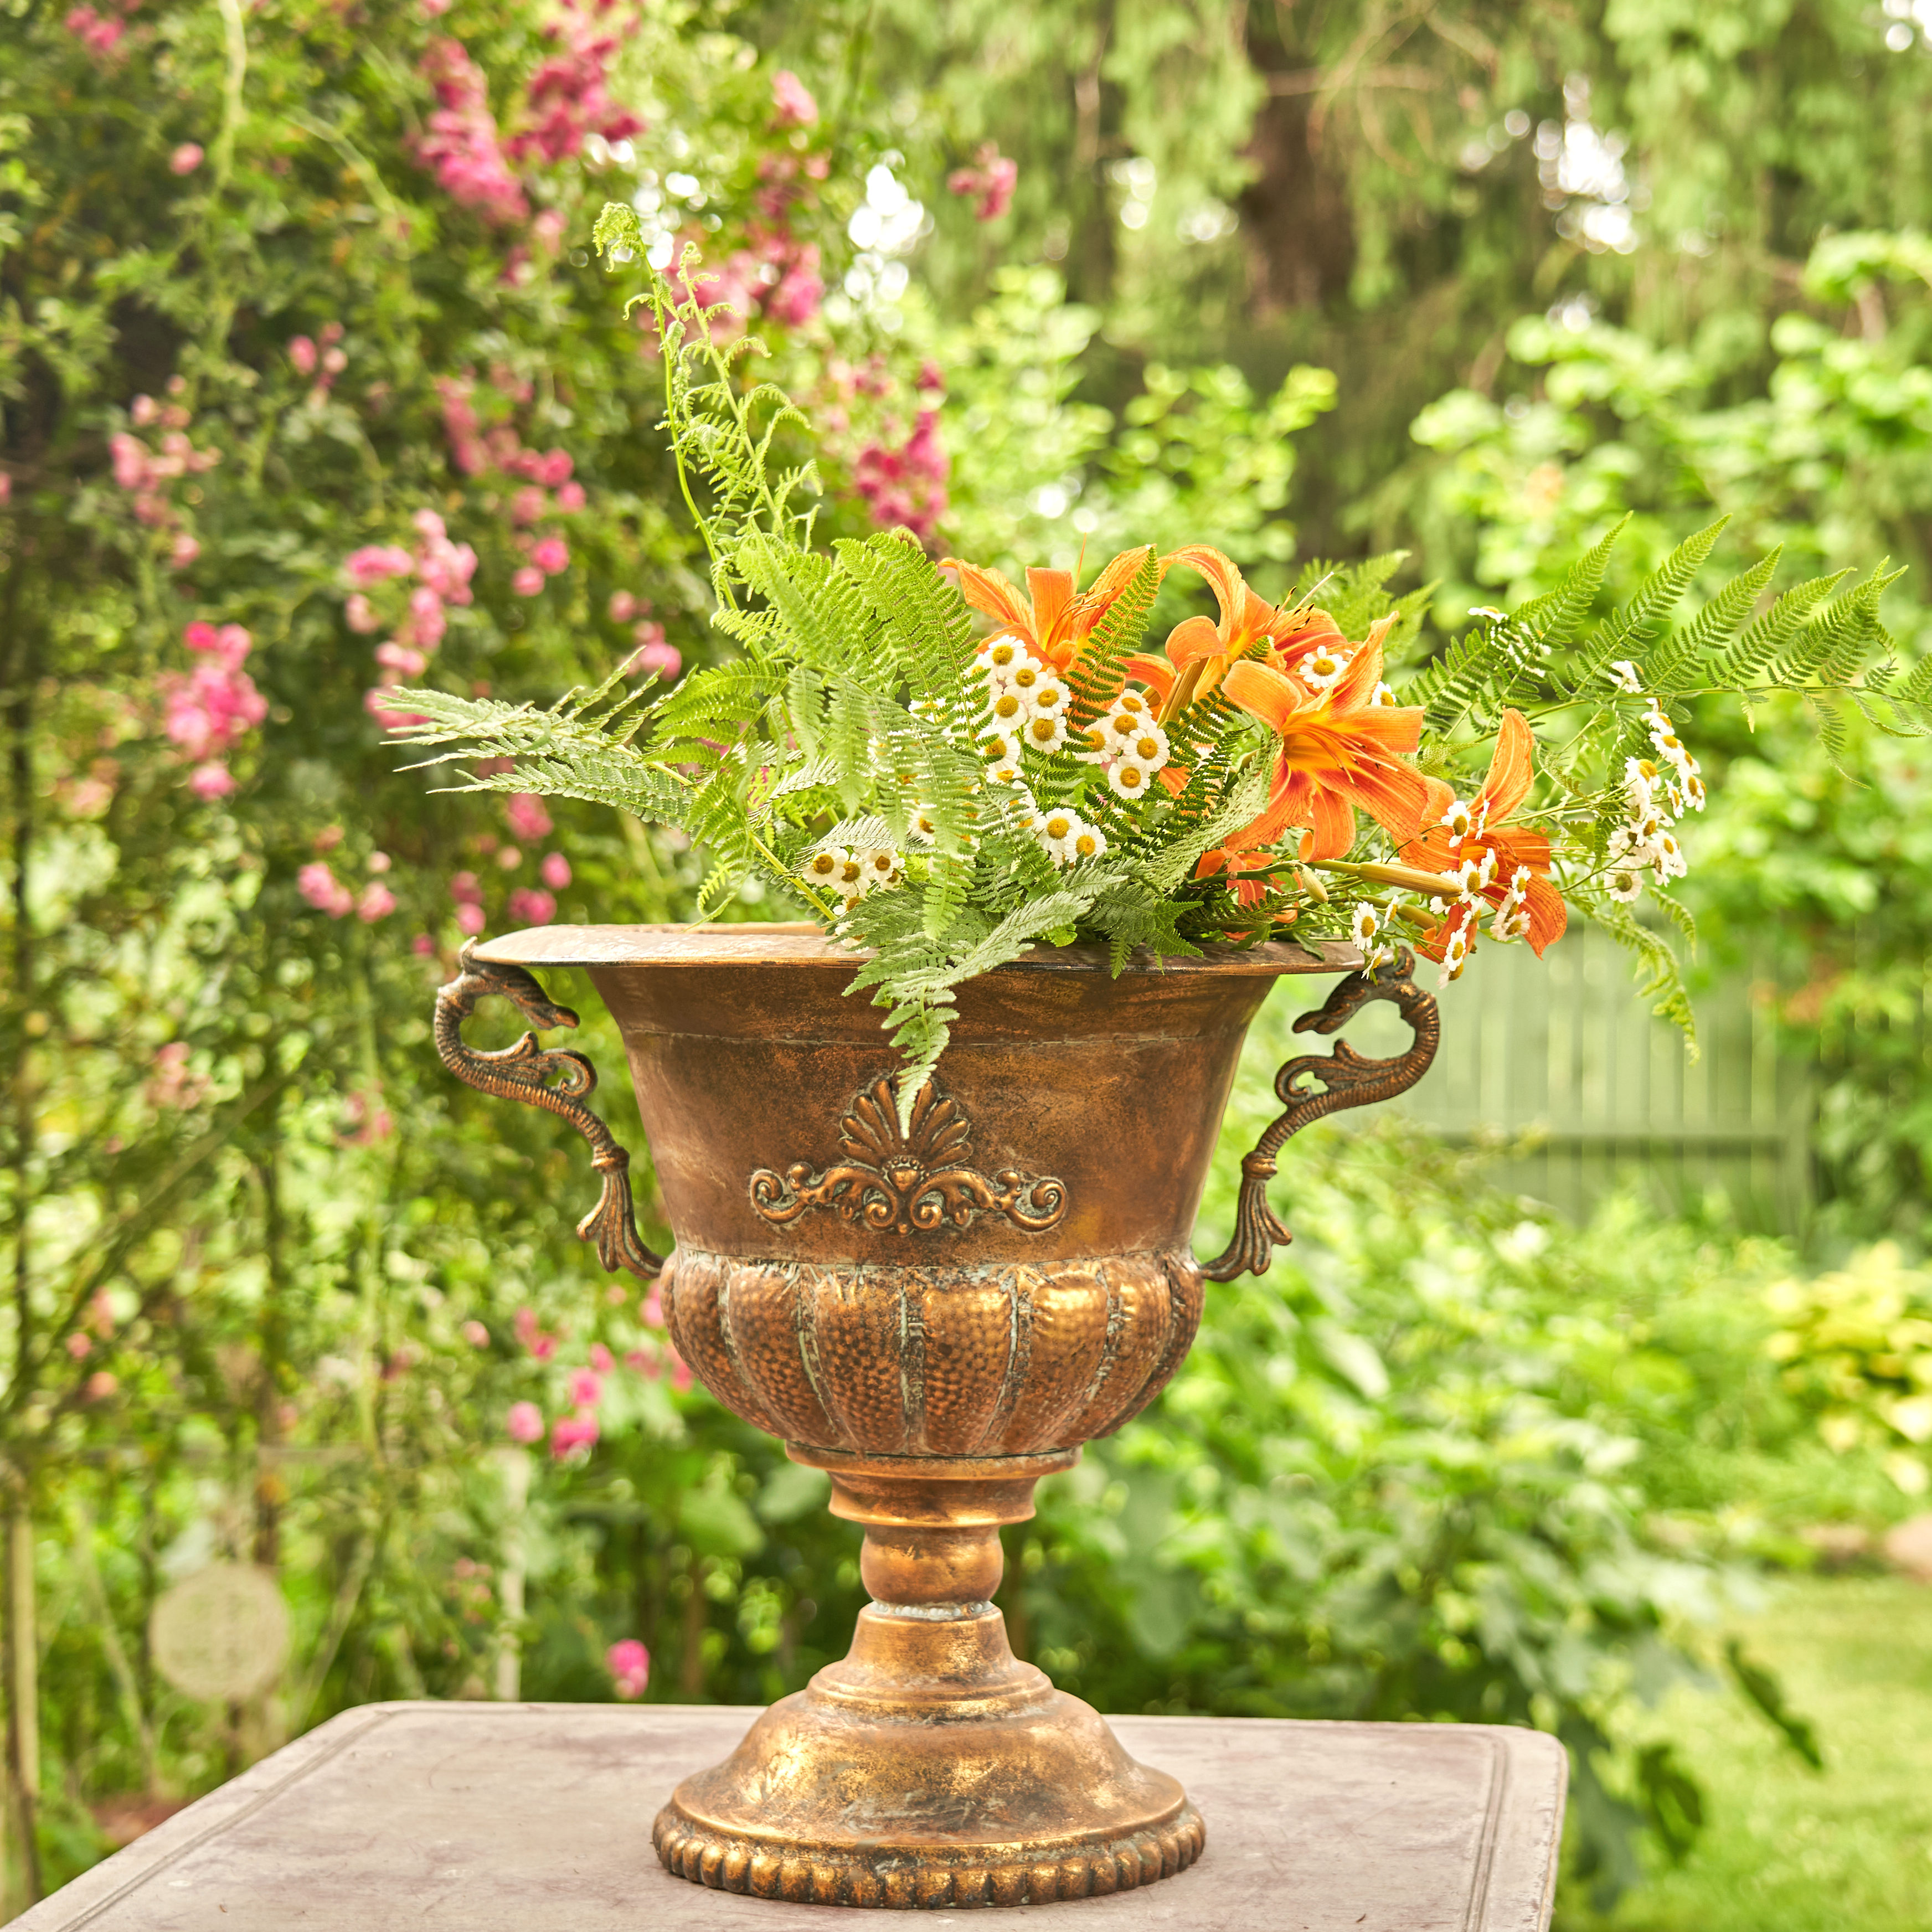 Large Iron Urn with Handles in Antique Gold